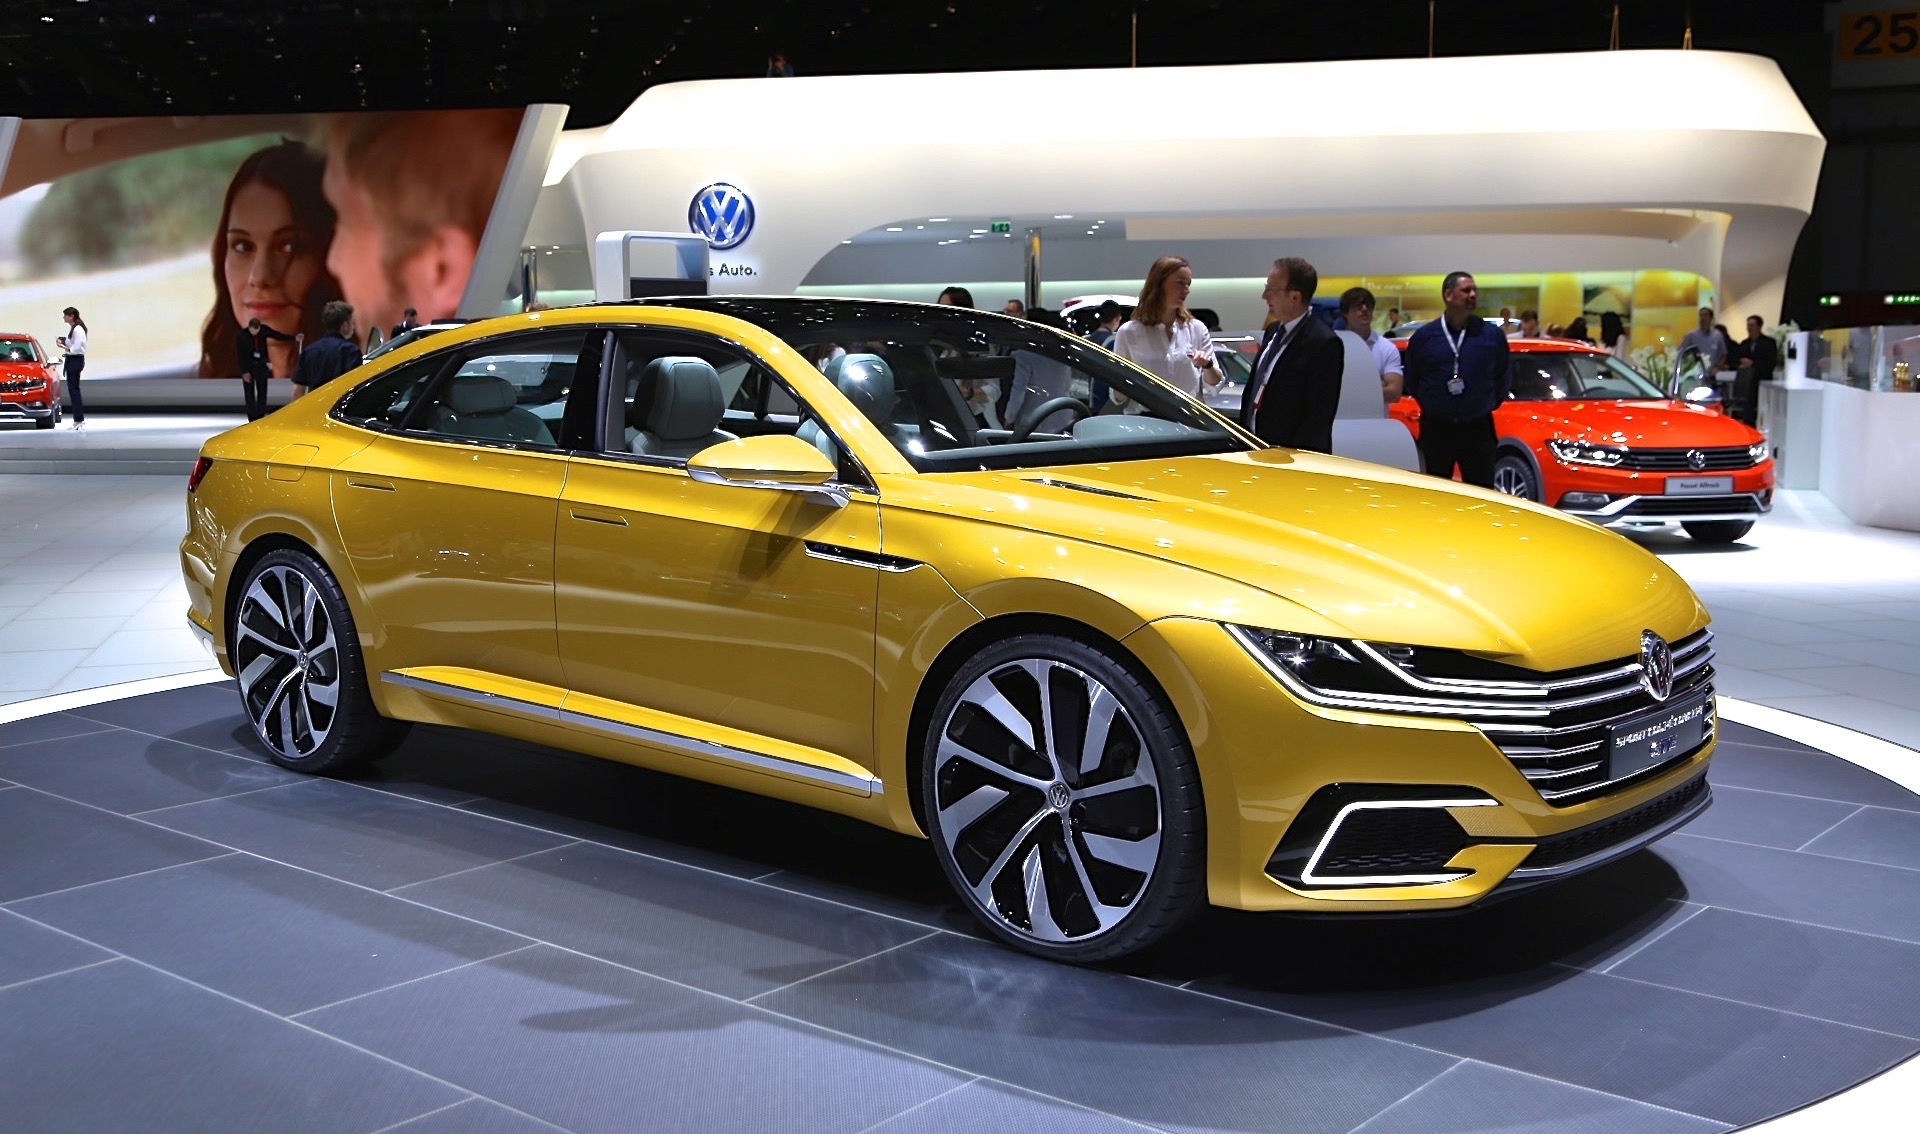 vw previews new design language next cc with sport coupe gte concept. Black Bedroom Furniture Sets. Home Design Ideas